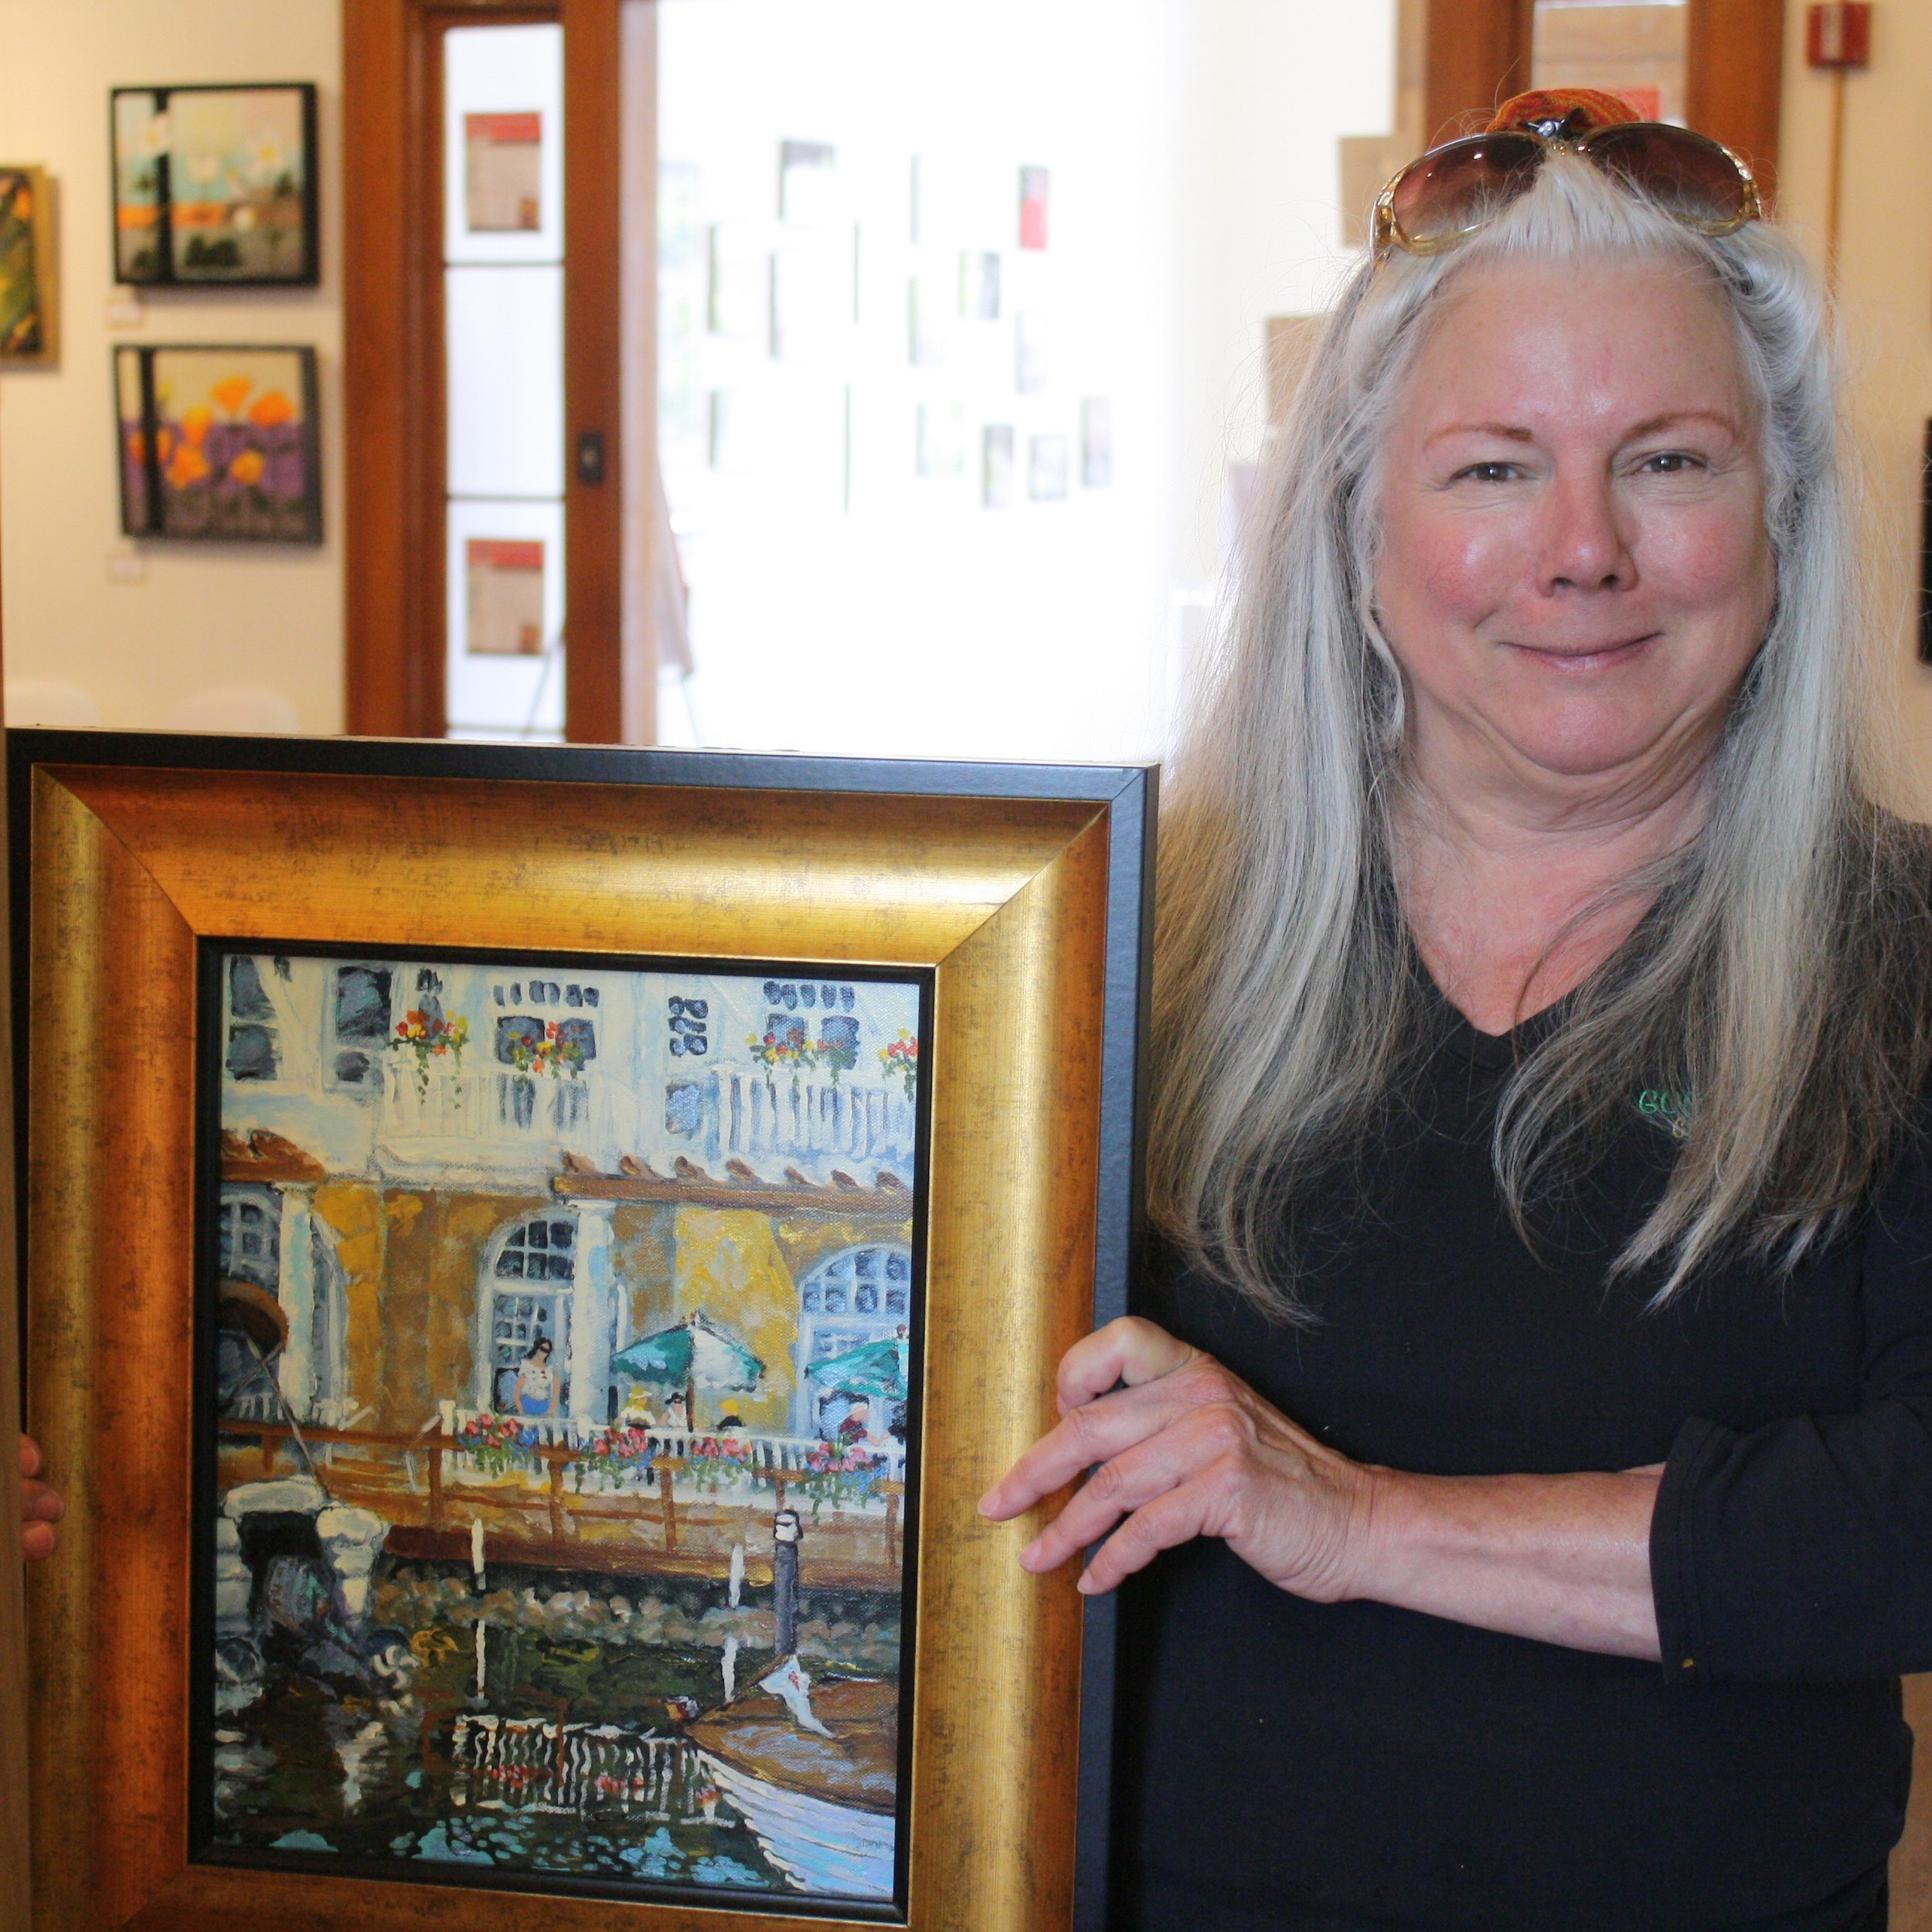 Becky Andersen is a Town Square resident artist and operates a studio in the basement of the community center.